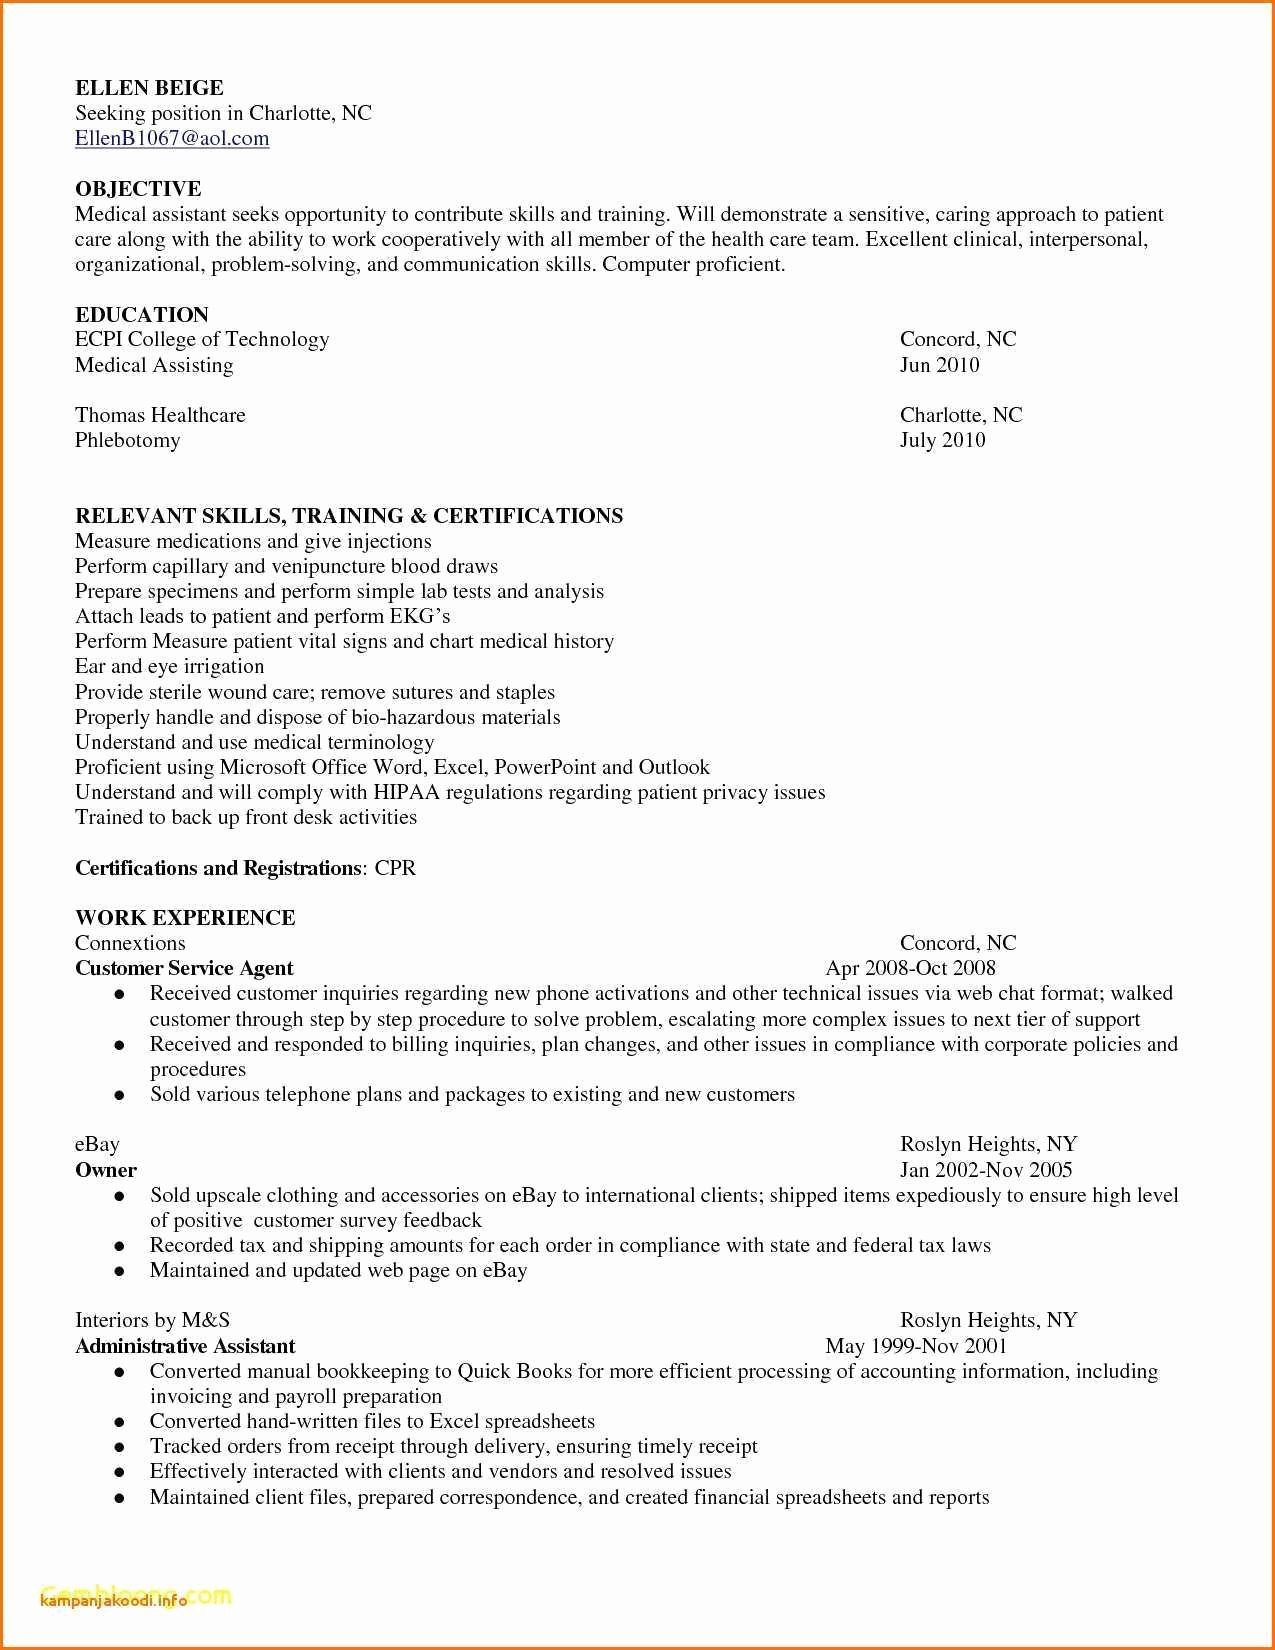 Resume Template for Medical assistant Beautiful Resume Template Free Medical assistant Resume Templates